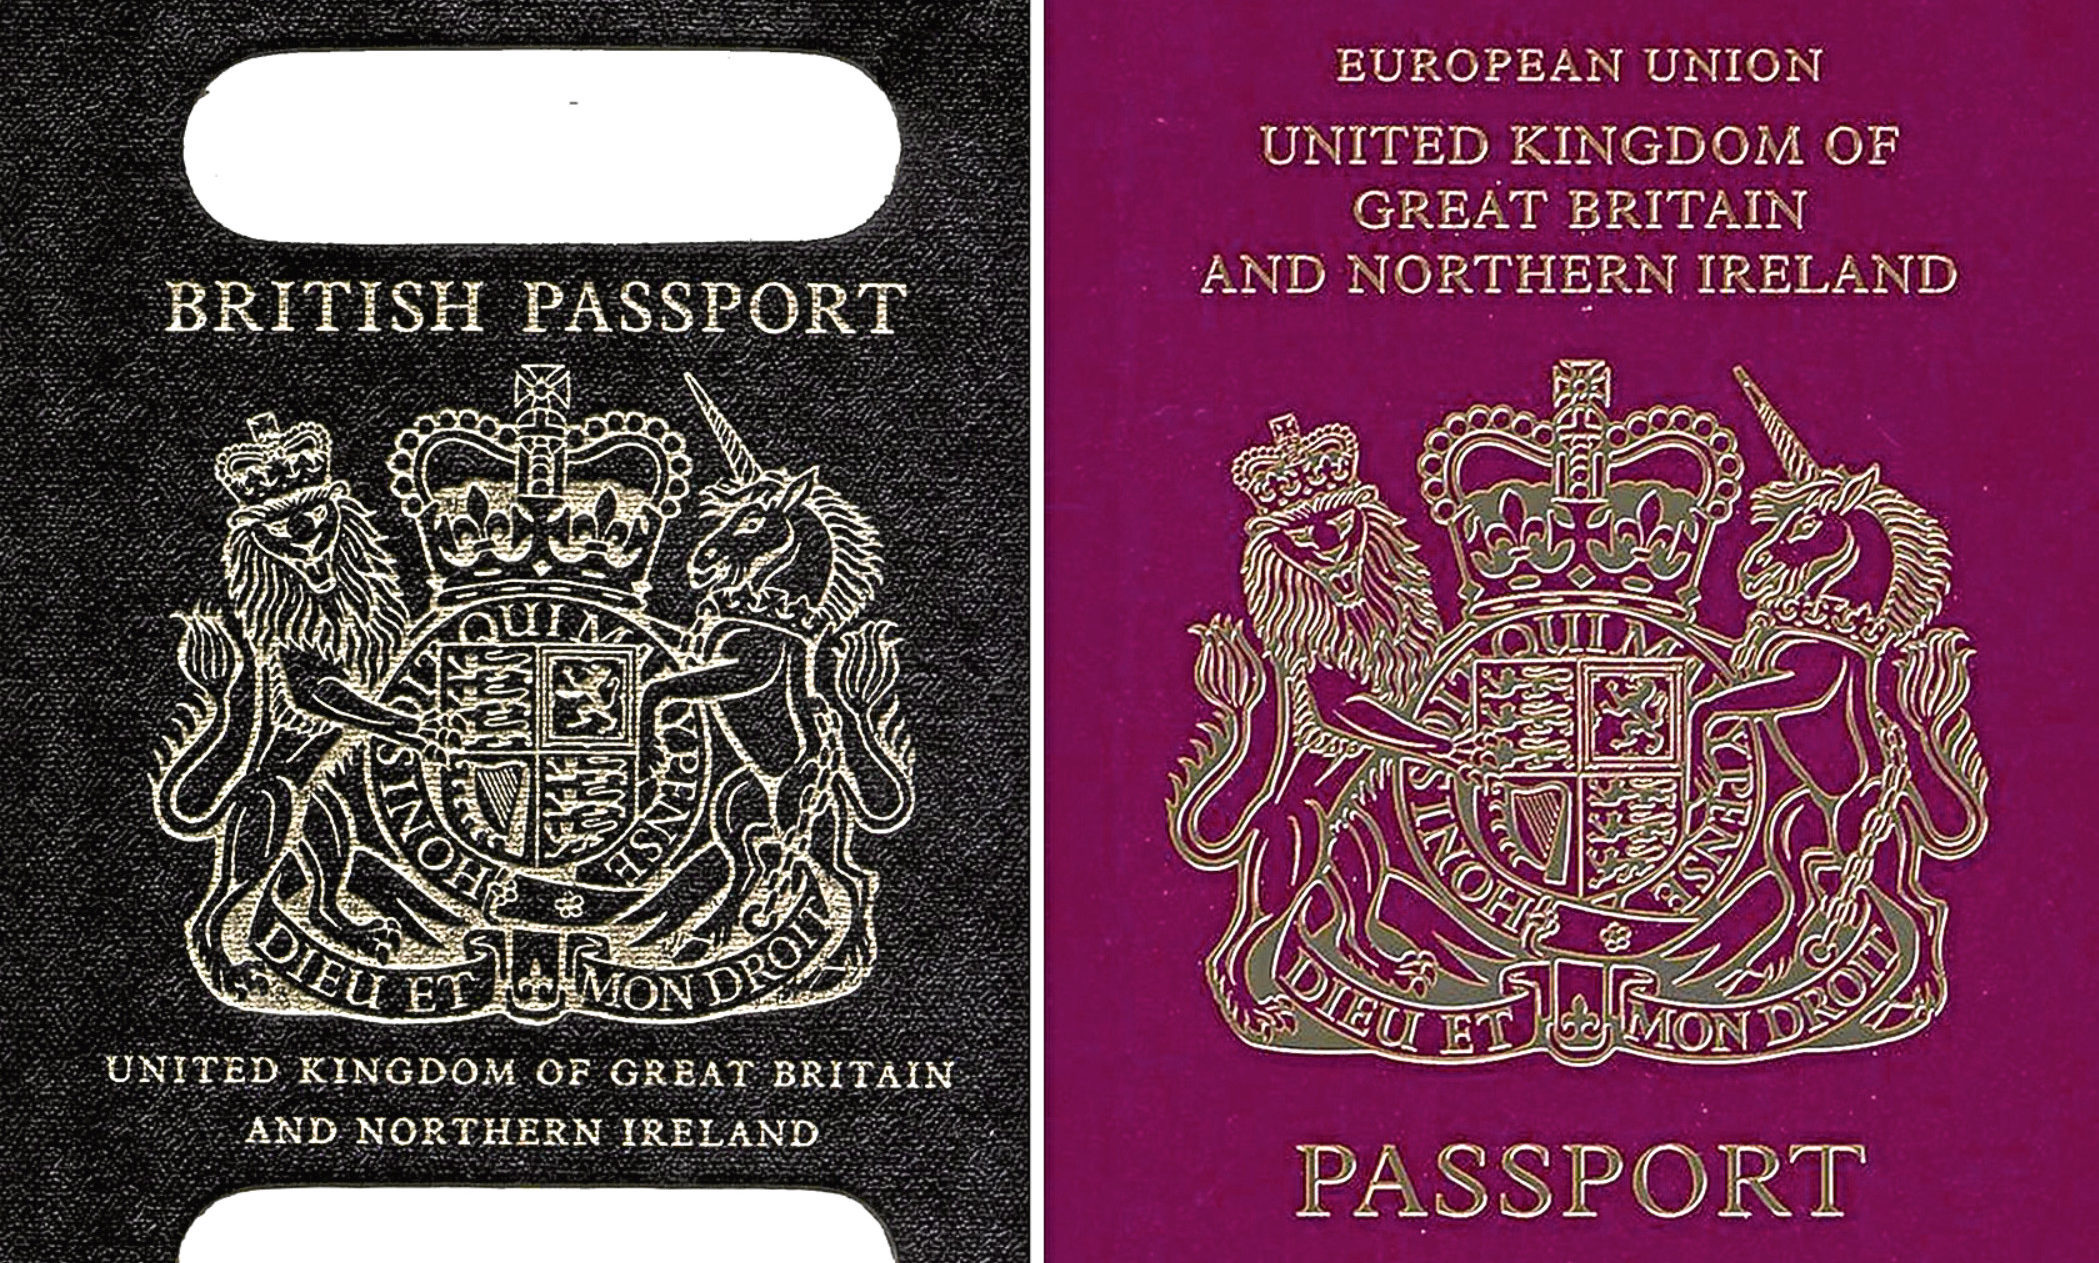 An old British passport (left) and a burgundy UK passport in the European Union style format. British passports will return to having blue covers after Brexit, it has been confirmed.